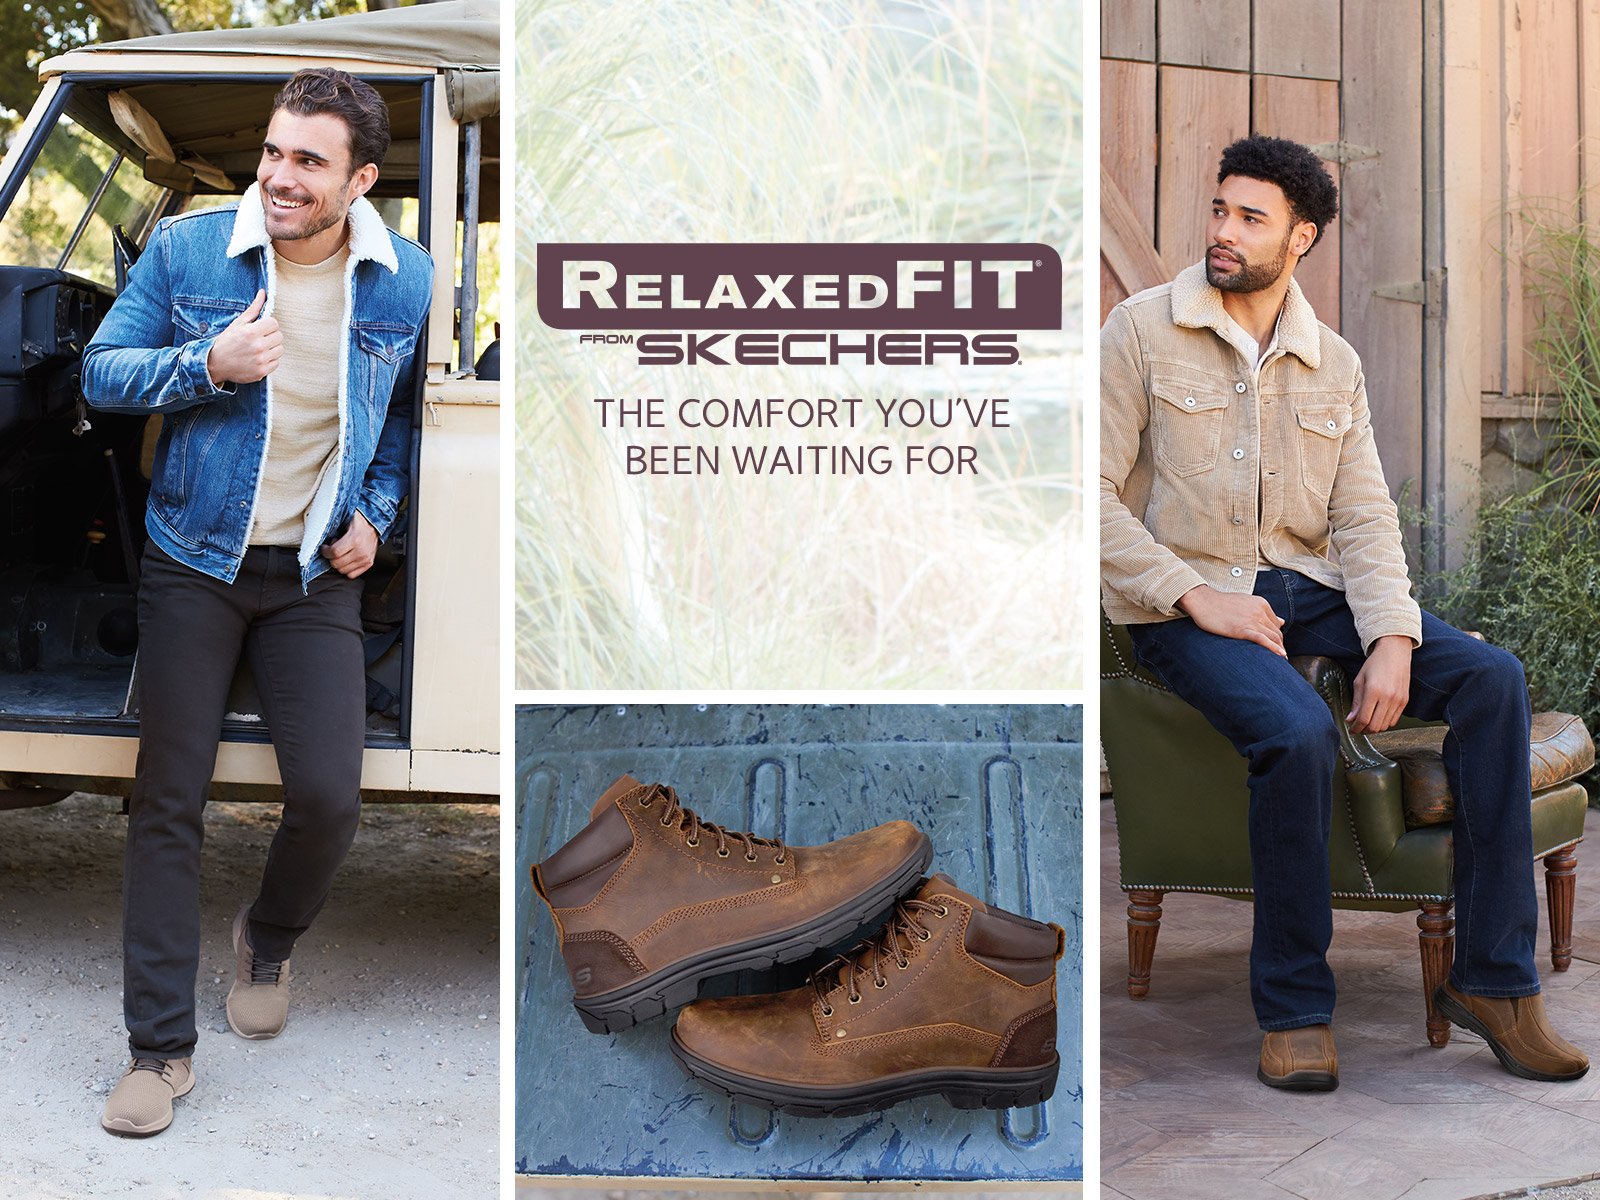 mens relaxed fit skechers